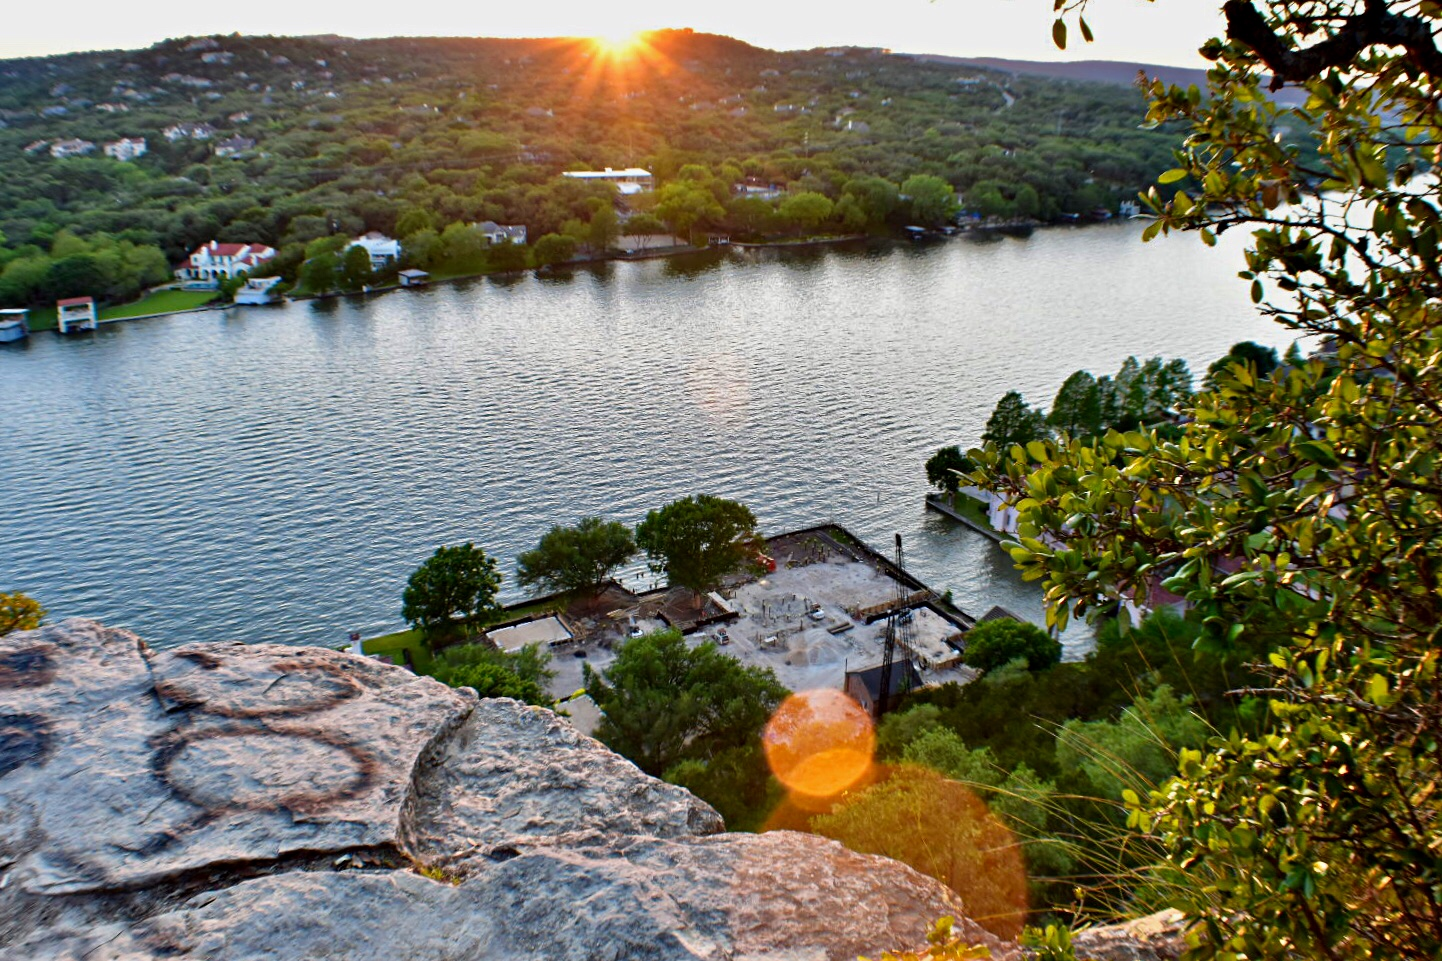 mt bonnell looking to the river